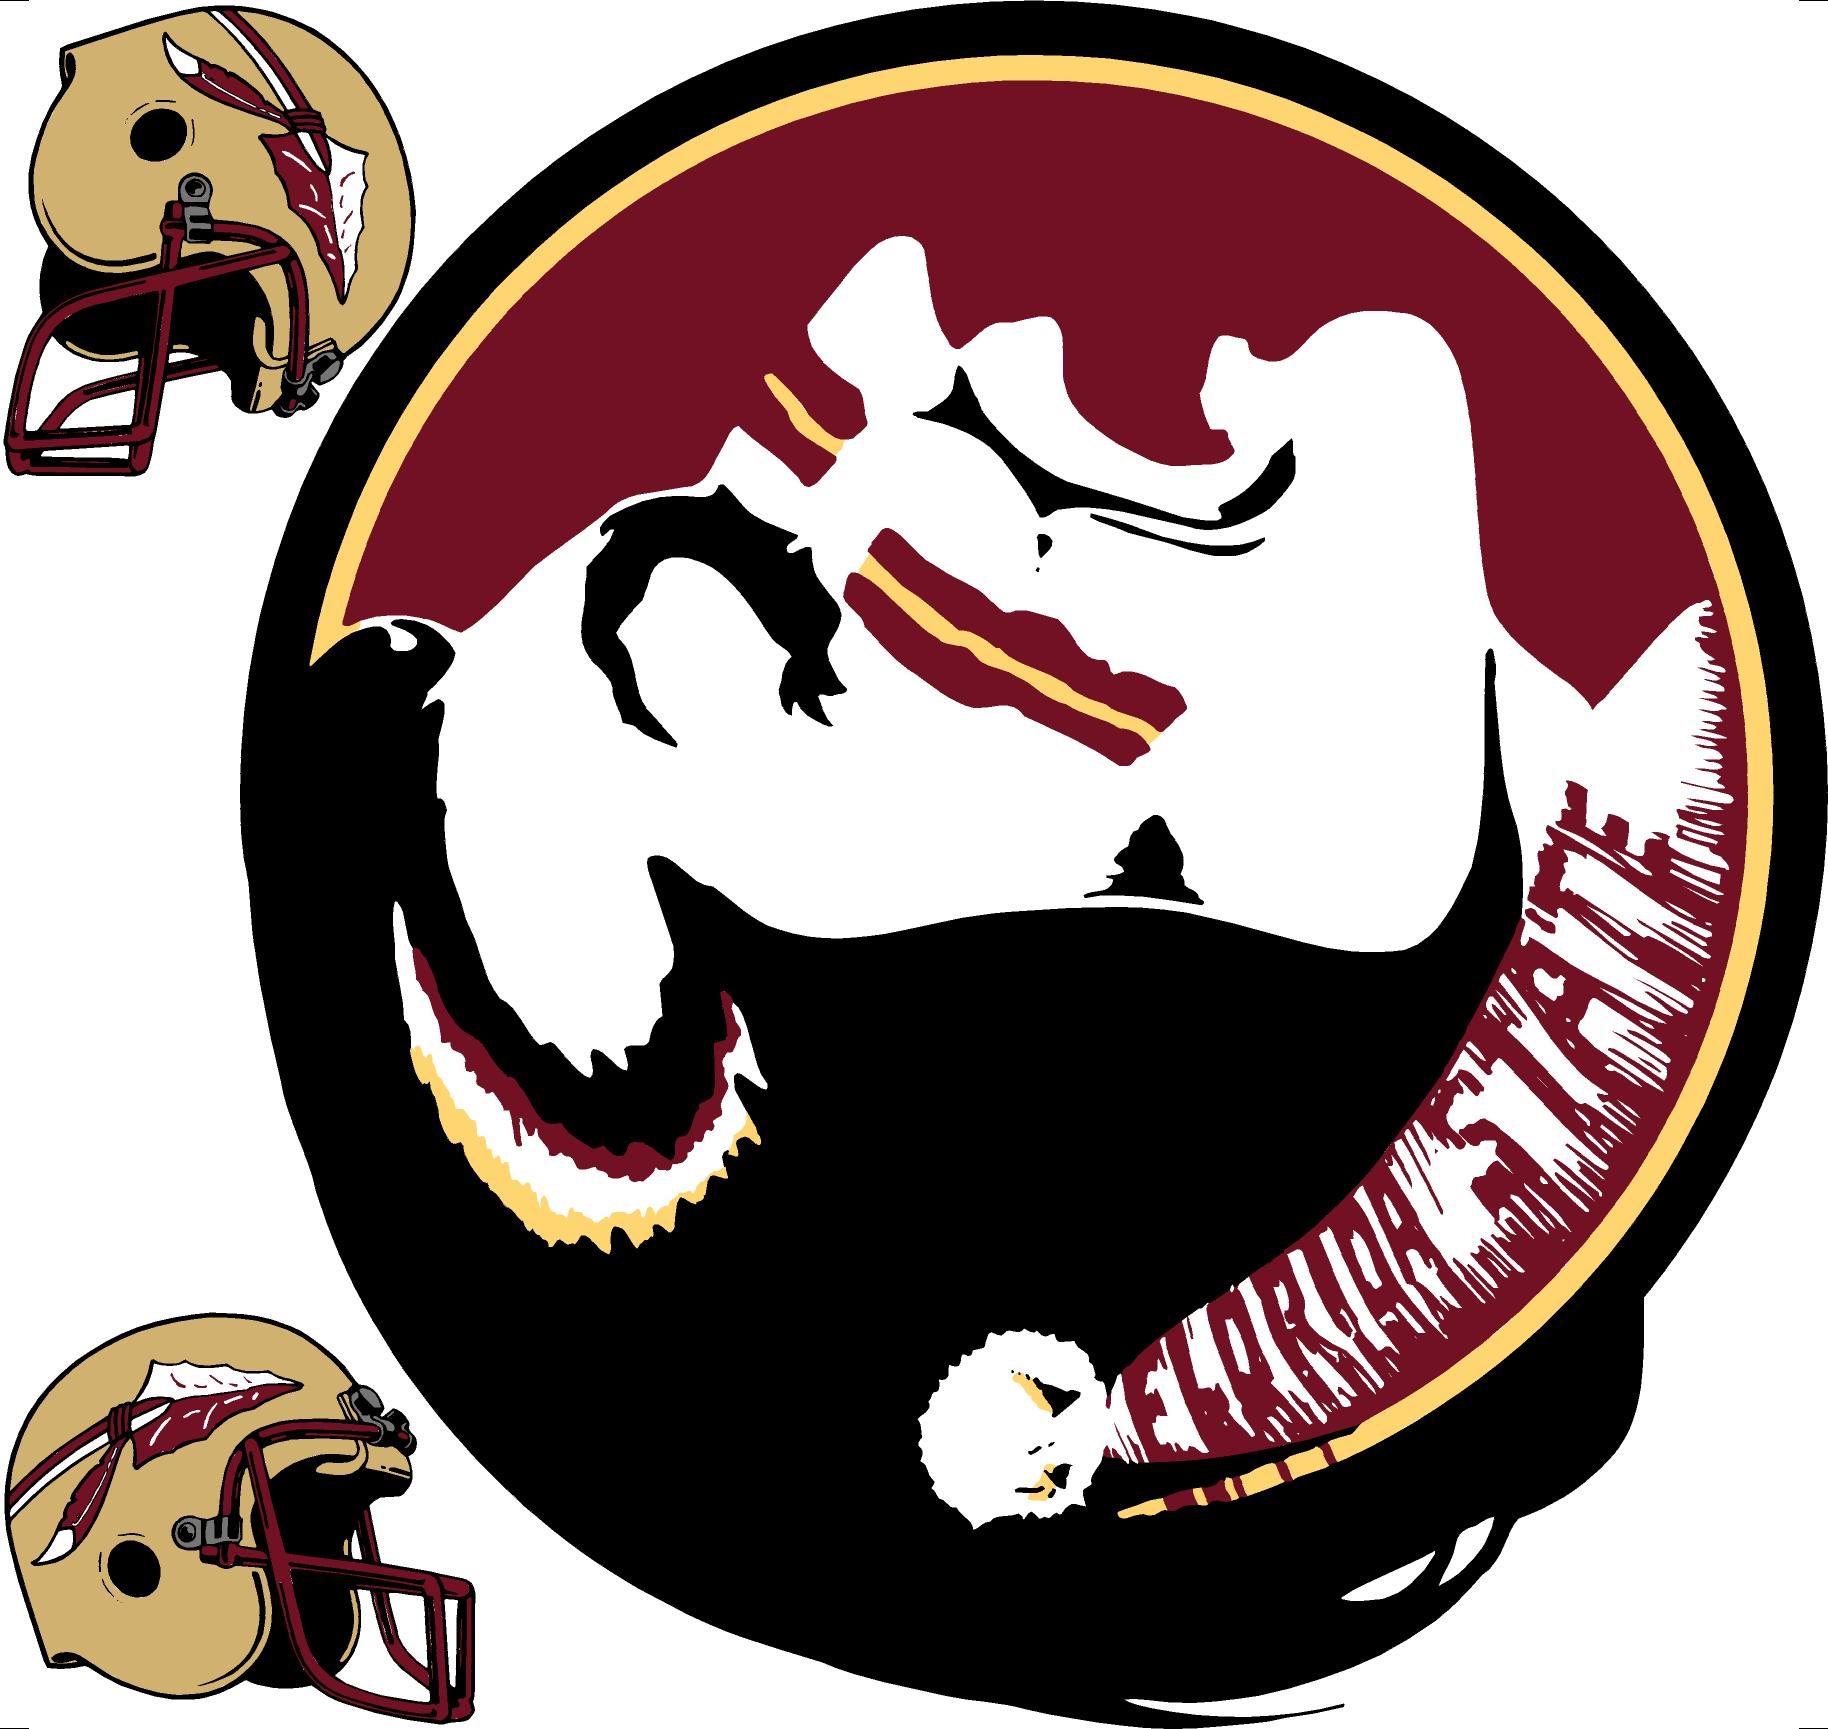 Fsu Football Wallpaper: Free Florida State Seminoles Wallpaper